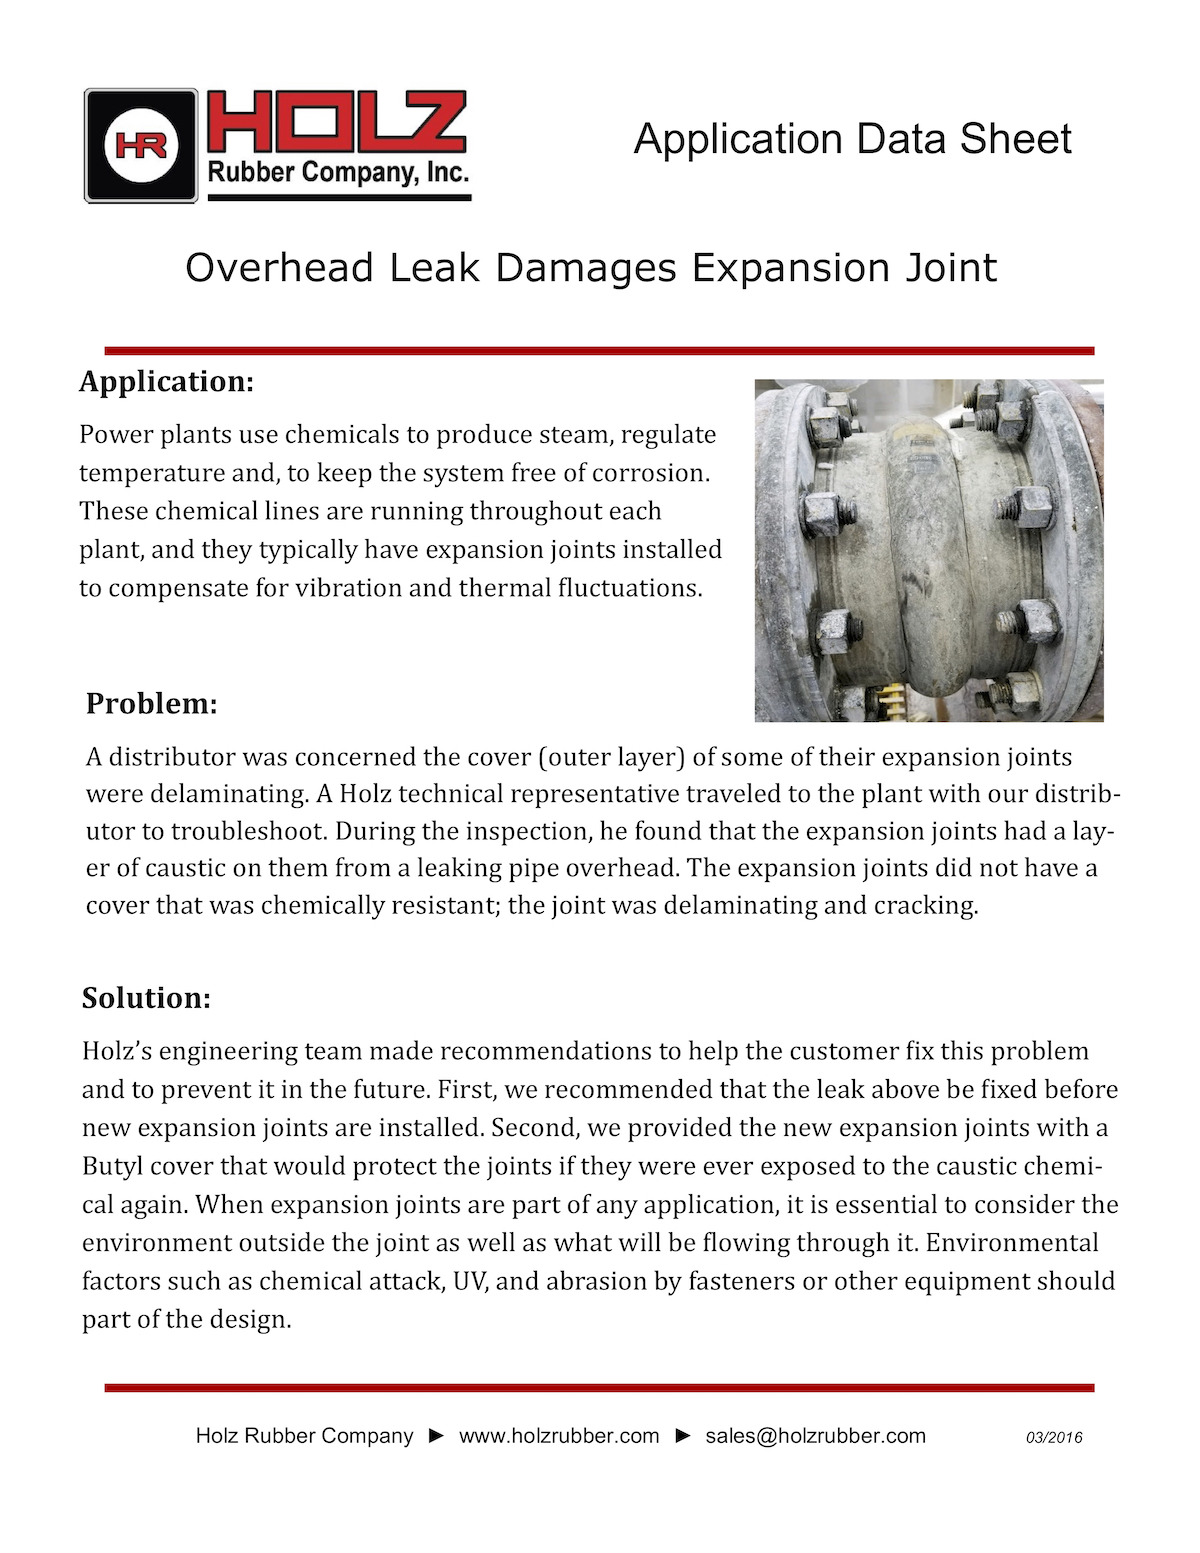 Overhead Leak Damages Expansion Joint